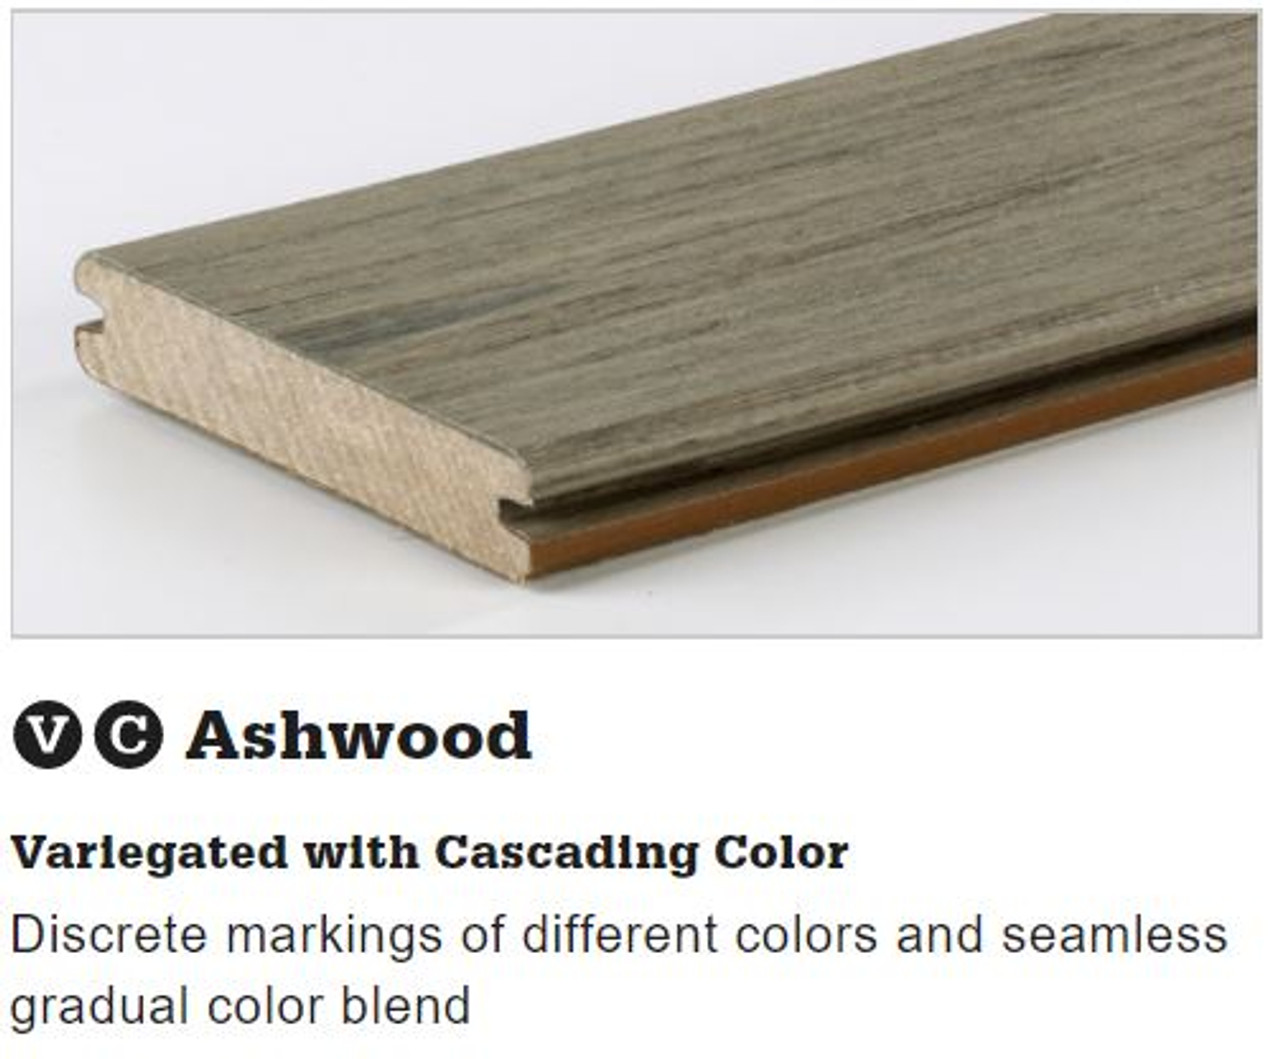 TimberTech Legacy Grooved Decking in Ashwood